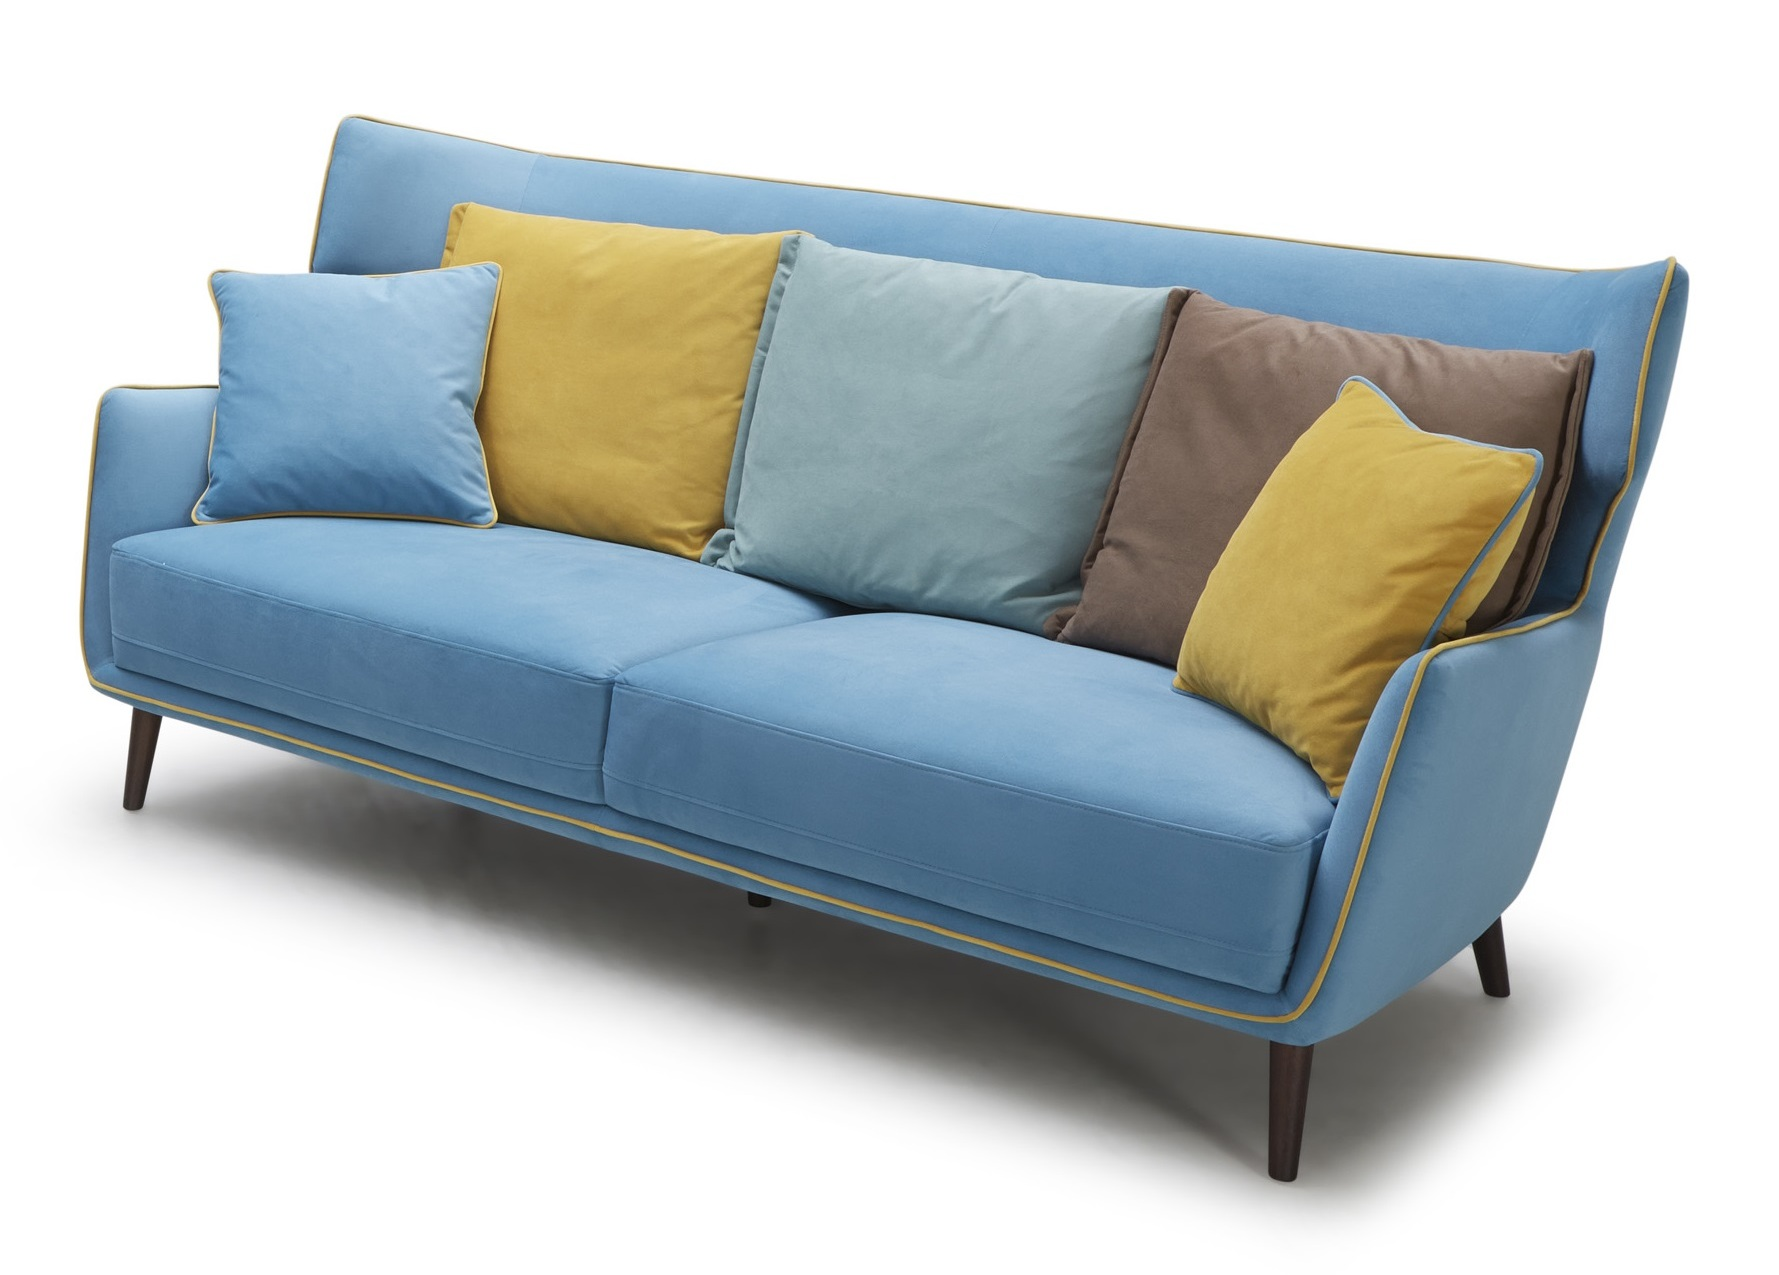 tall boy retro sofa in acqua blue color not just brown. Black Bedroom Furniture Sets. Home Design Ideas